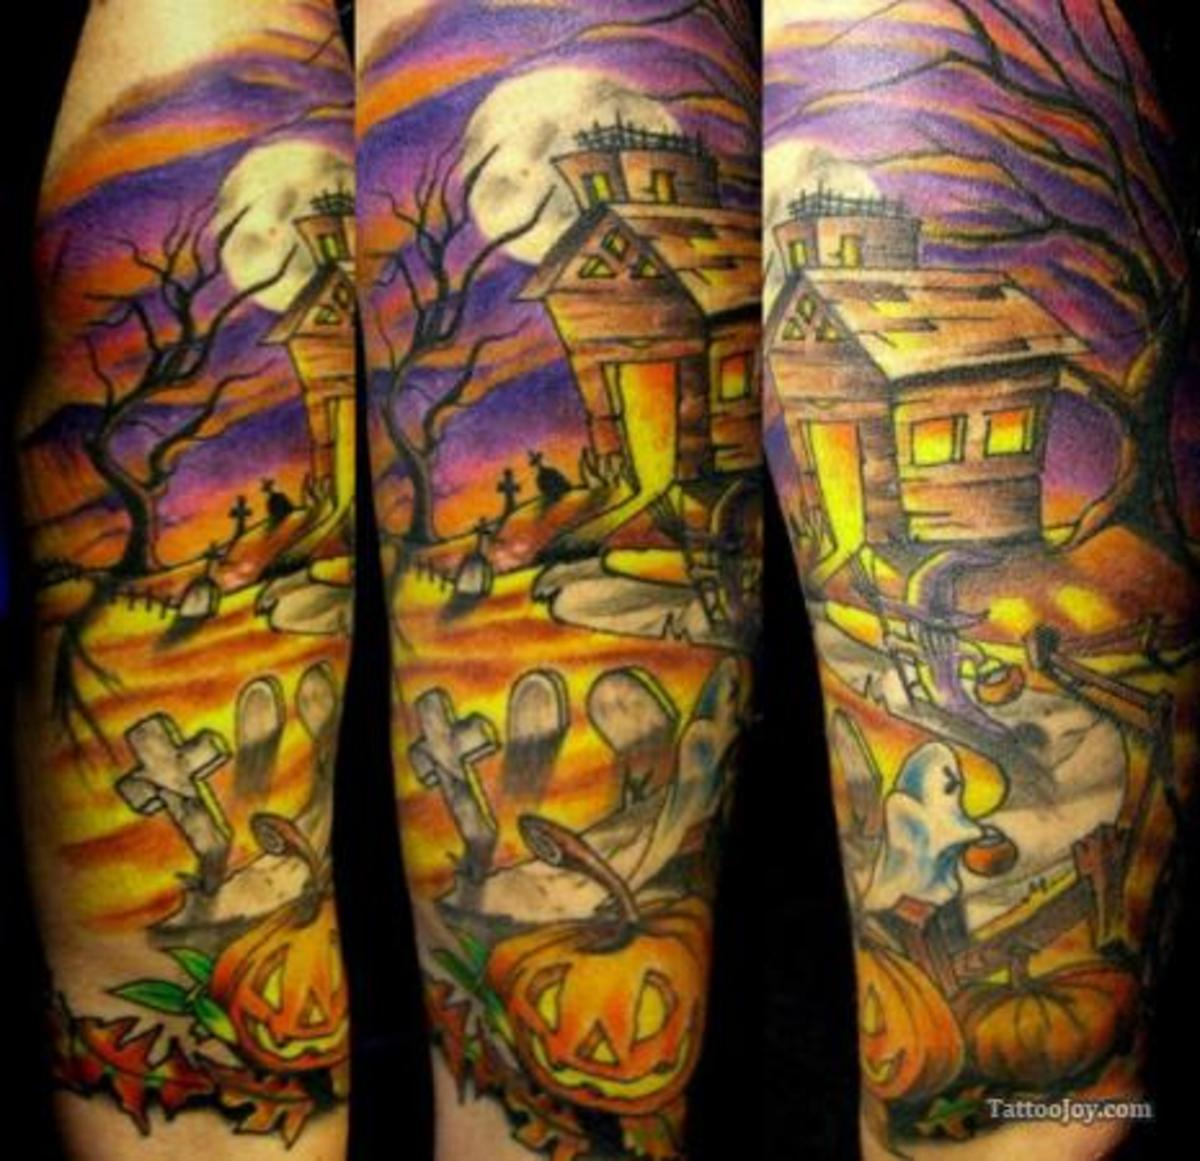 Haunted house tattoo.